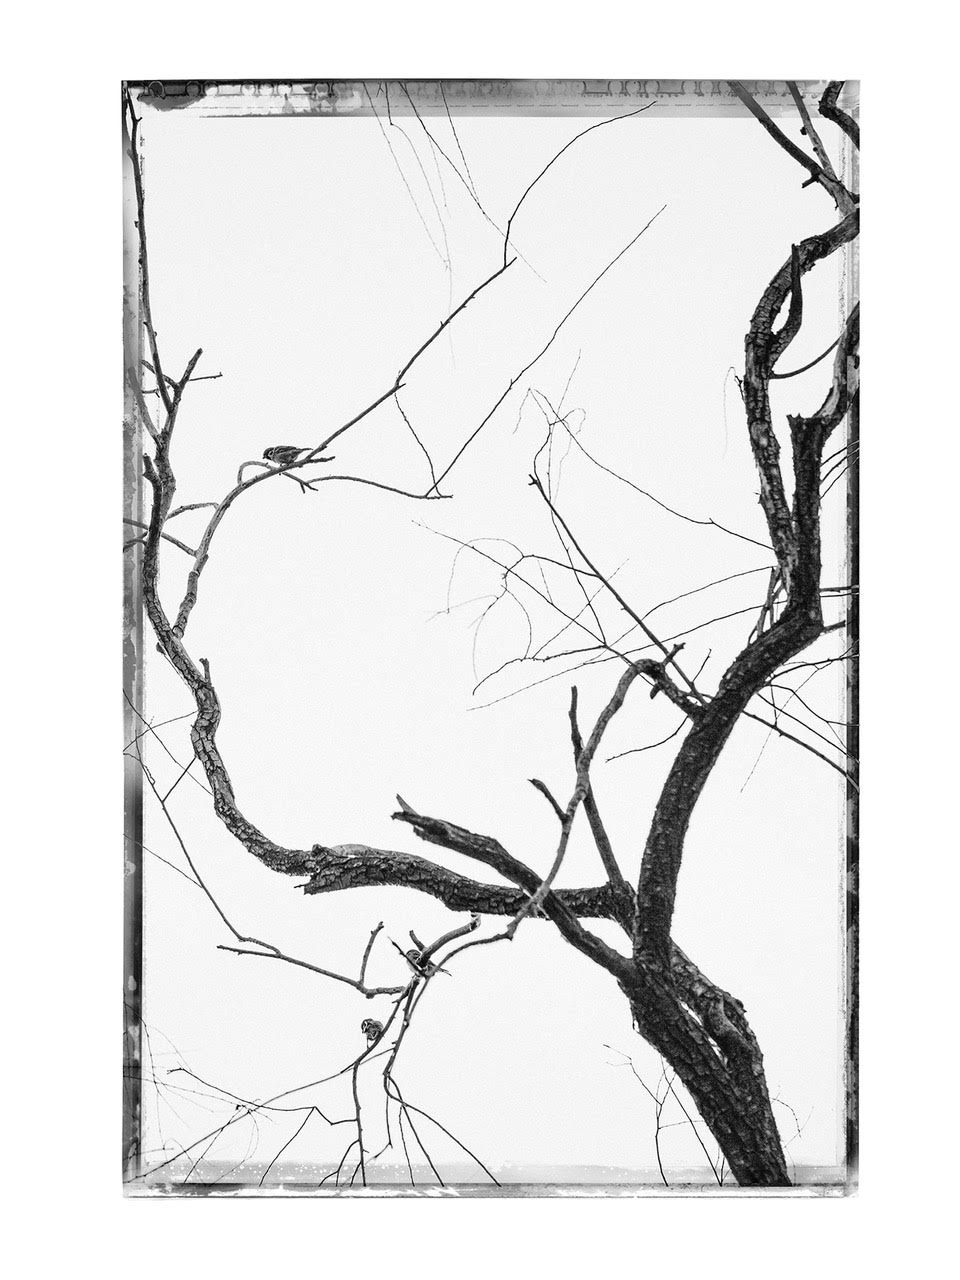 Kim Jungman: Can You Hear the Wind Blow, Special Limited Edition (with Unique Gelatin Silver Print, Edition of 1) [SIGNED]